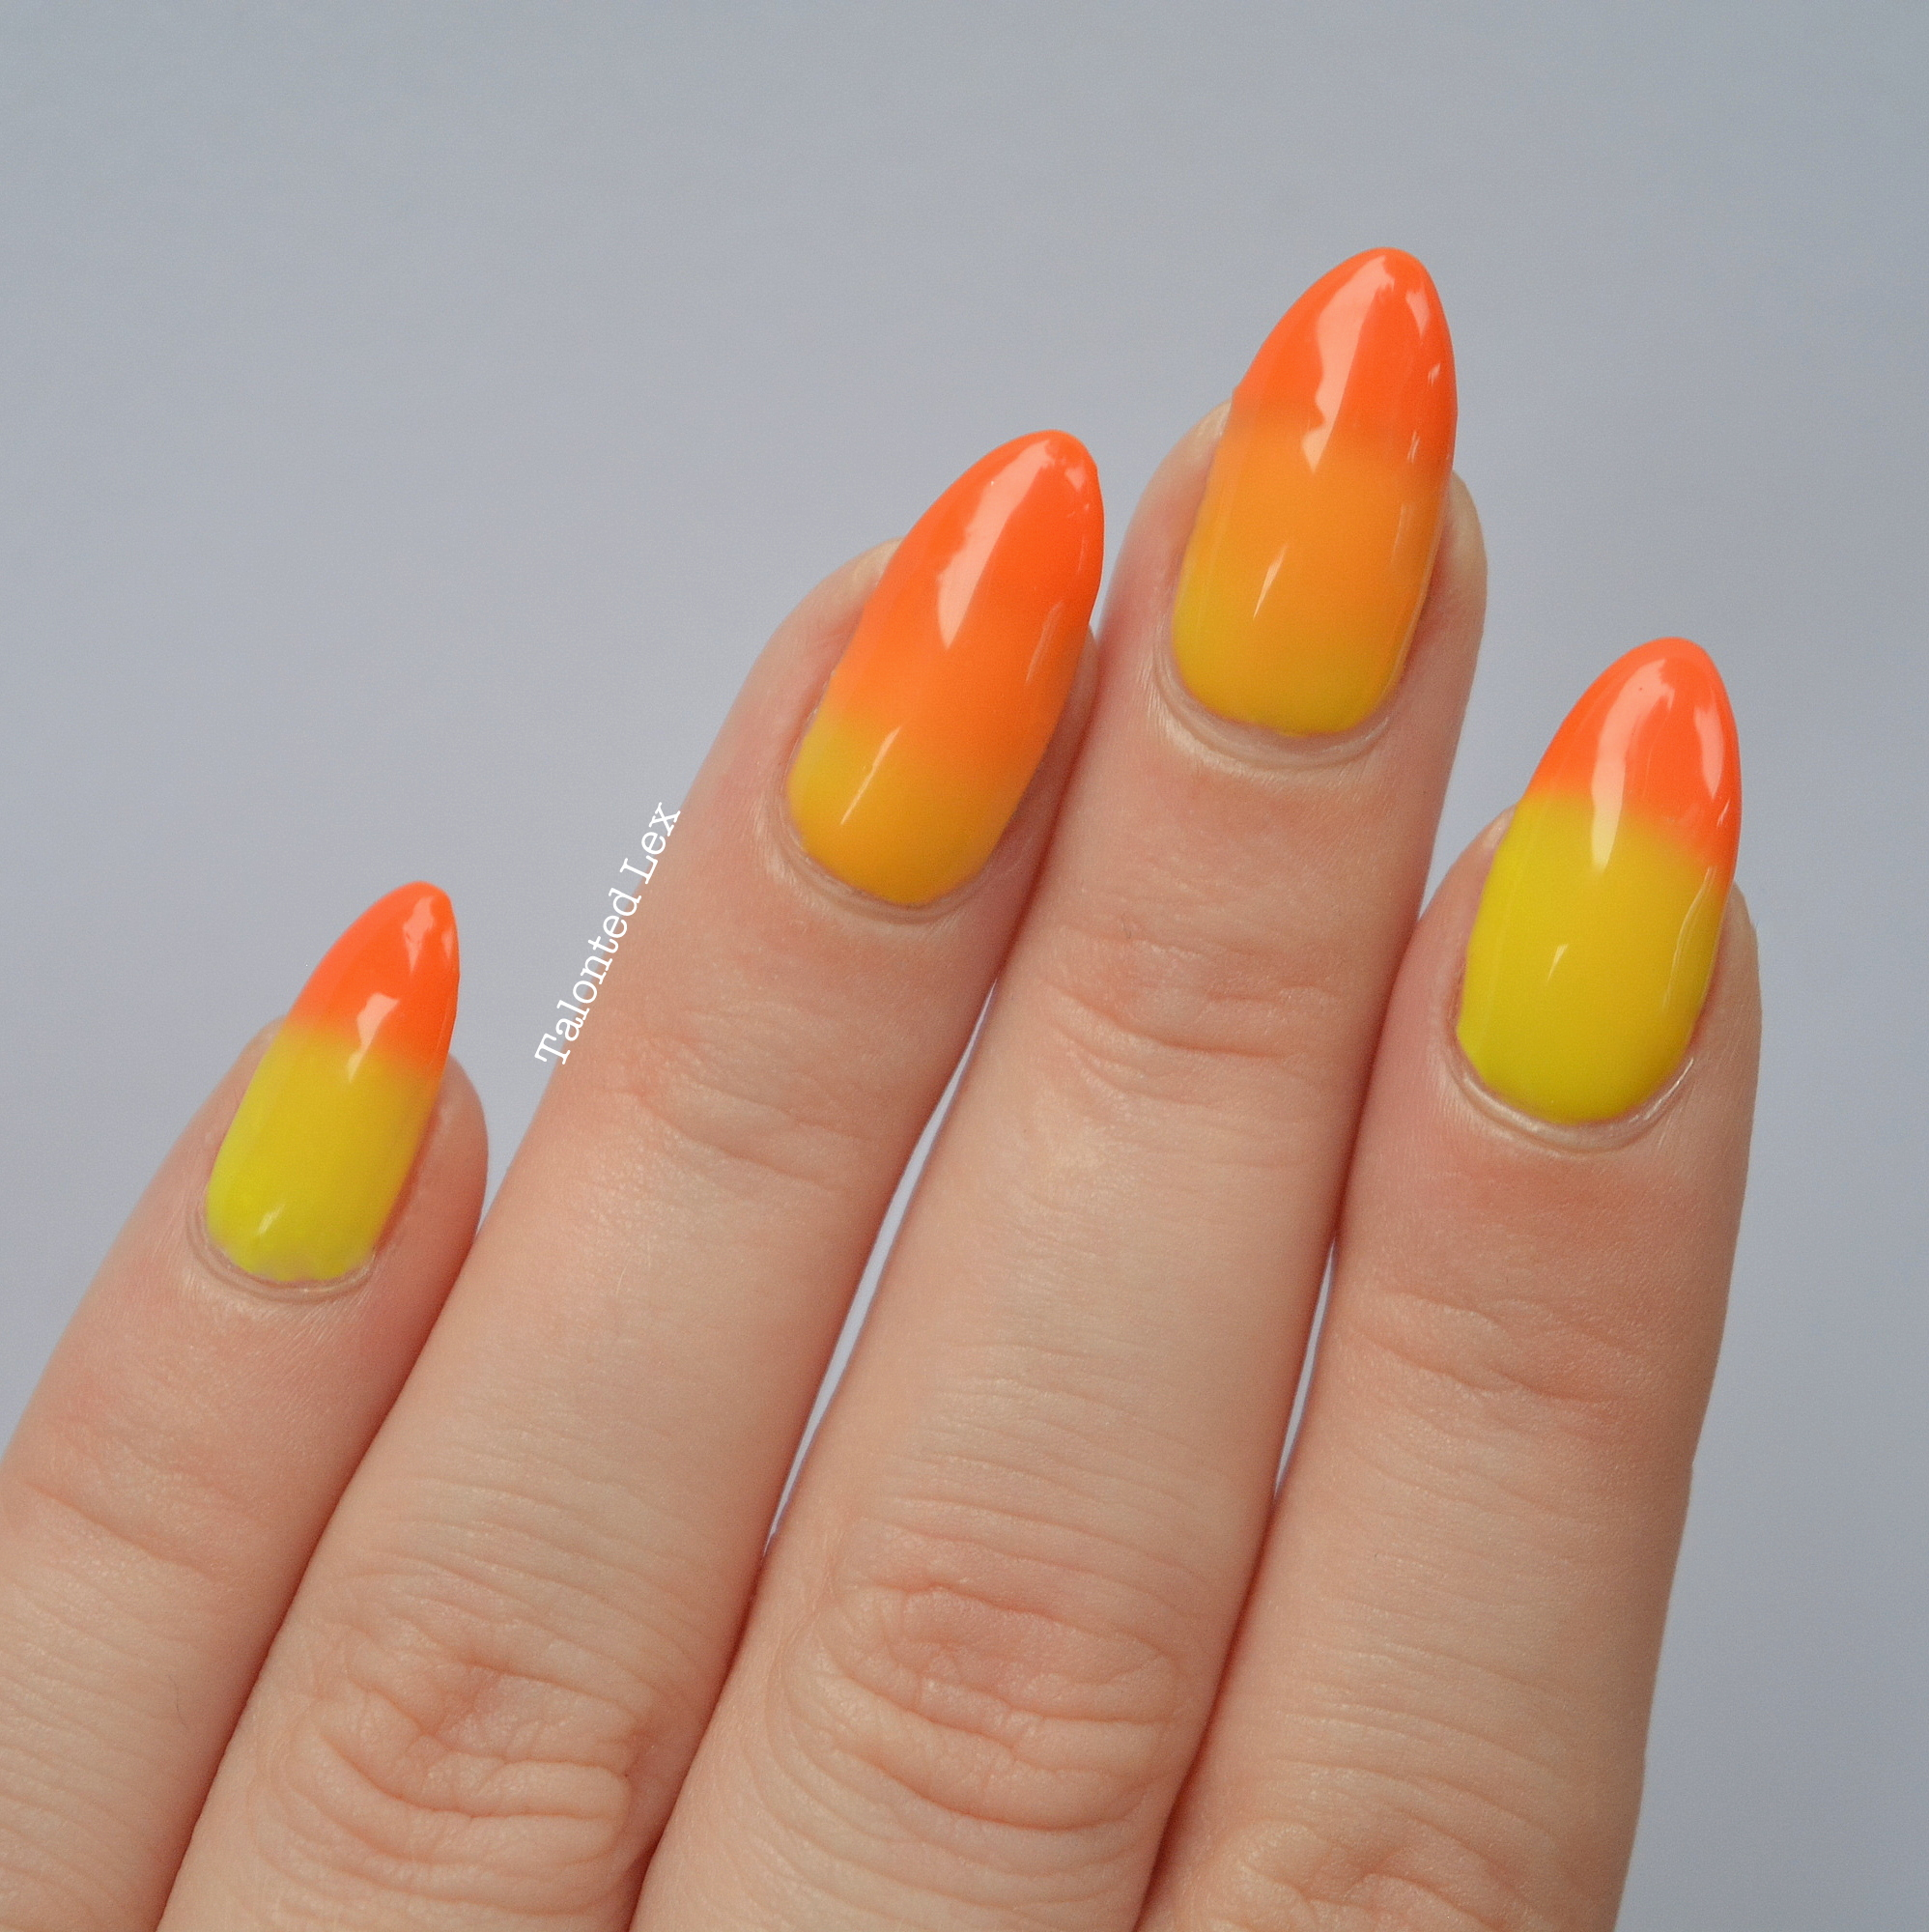 Madam-Glam-Sunshine-Color-Change-Gel-polish-review-Talonted-Lex